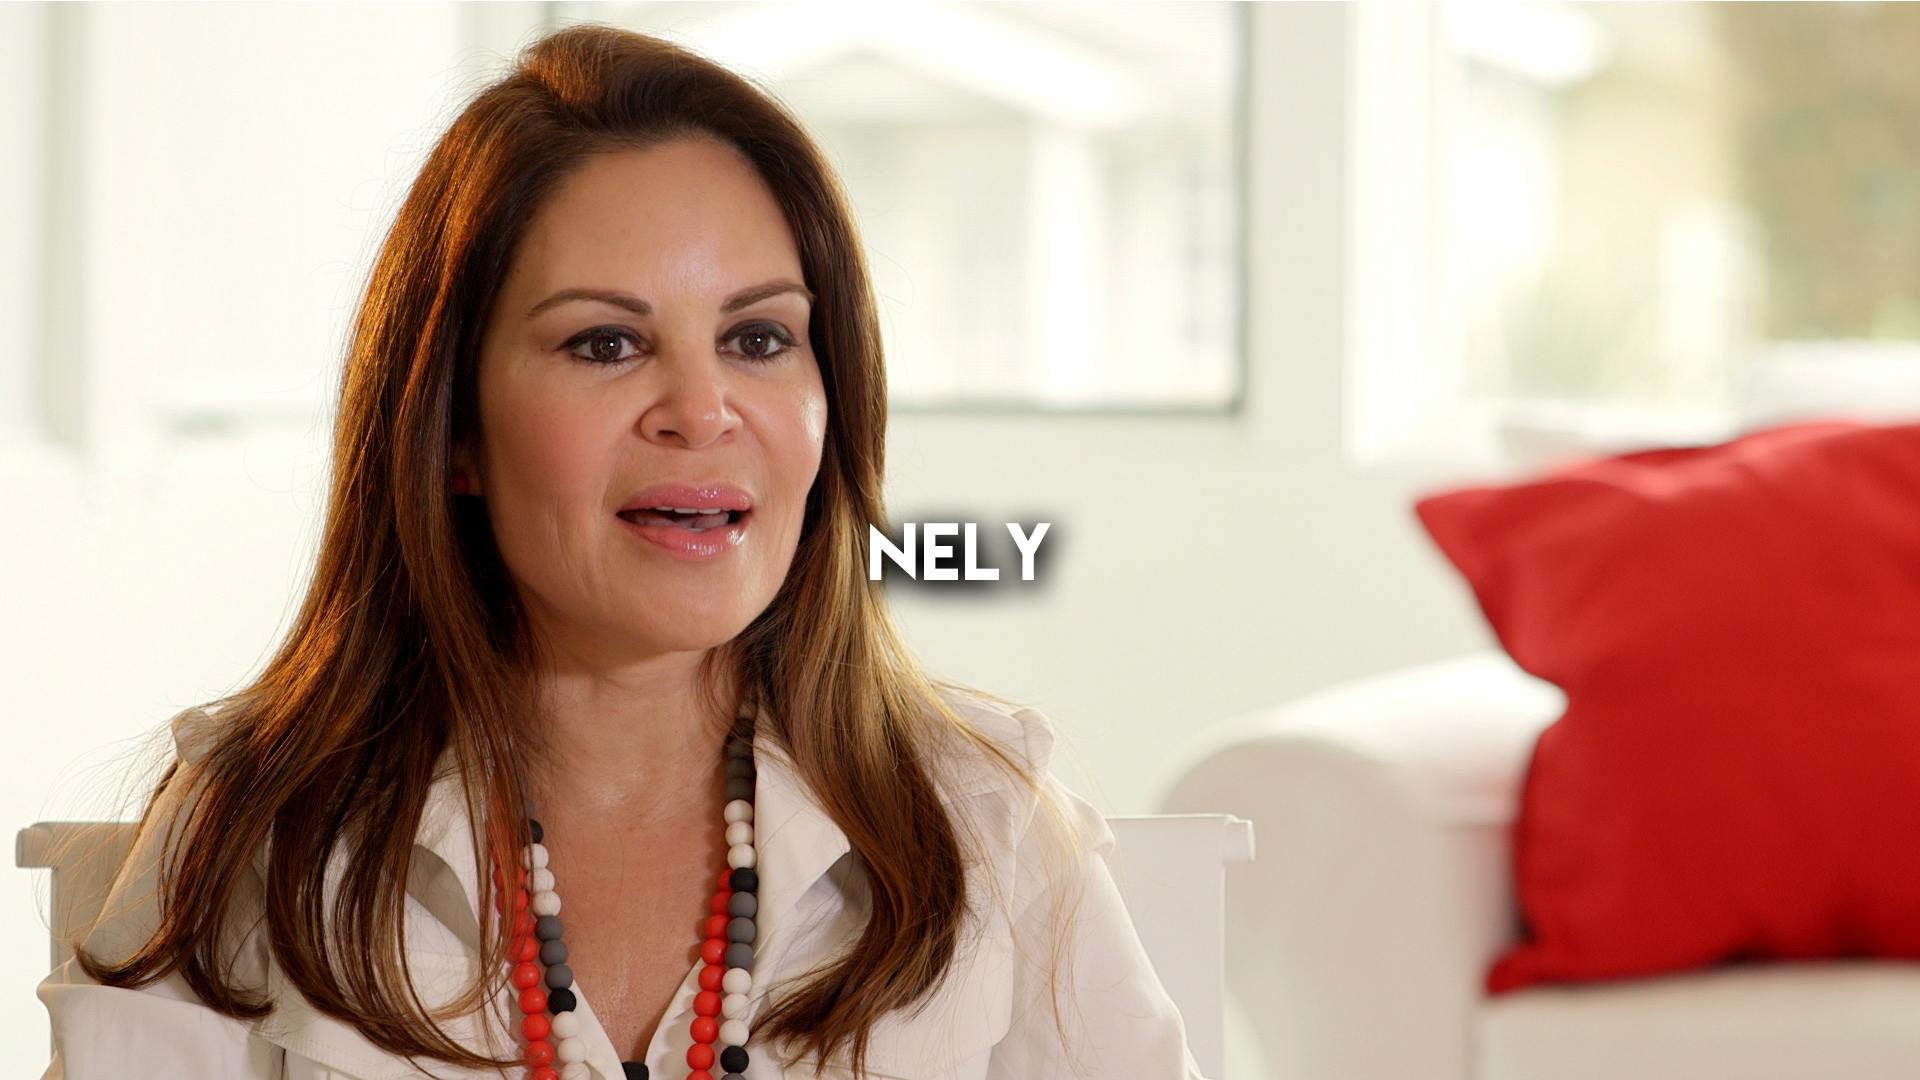 Nely-5by20